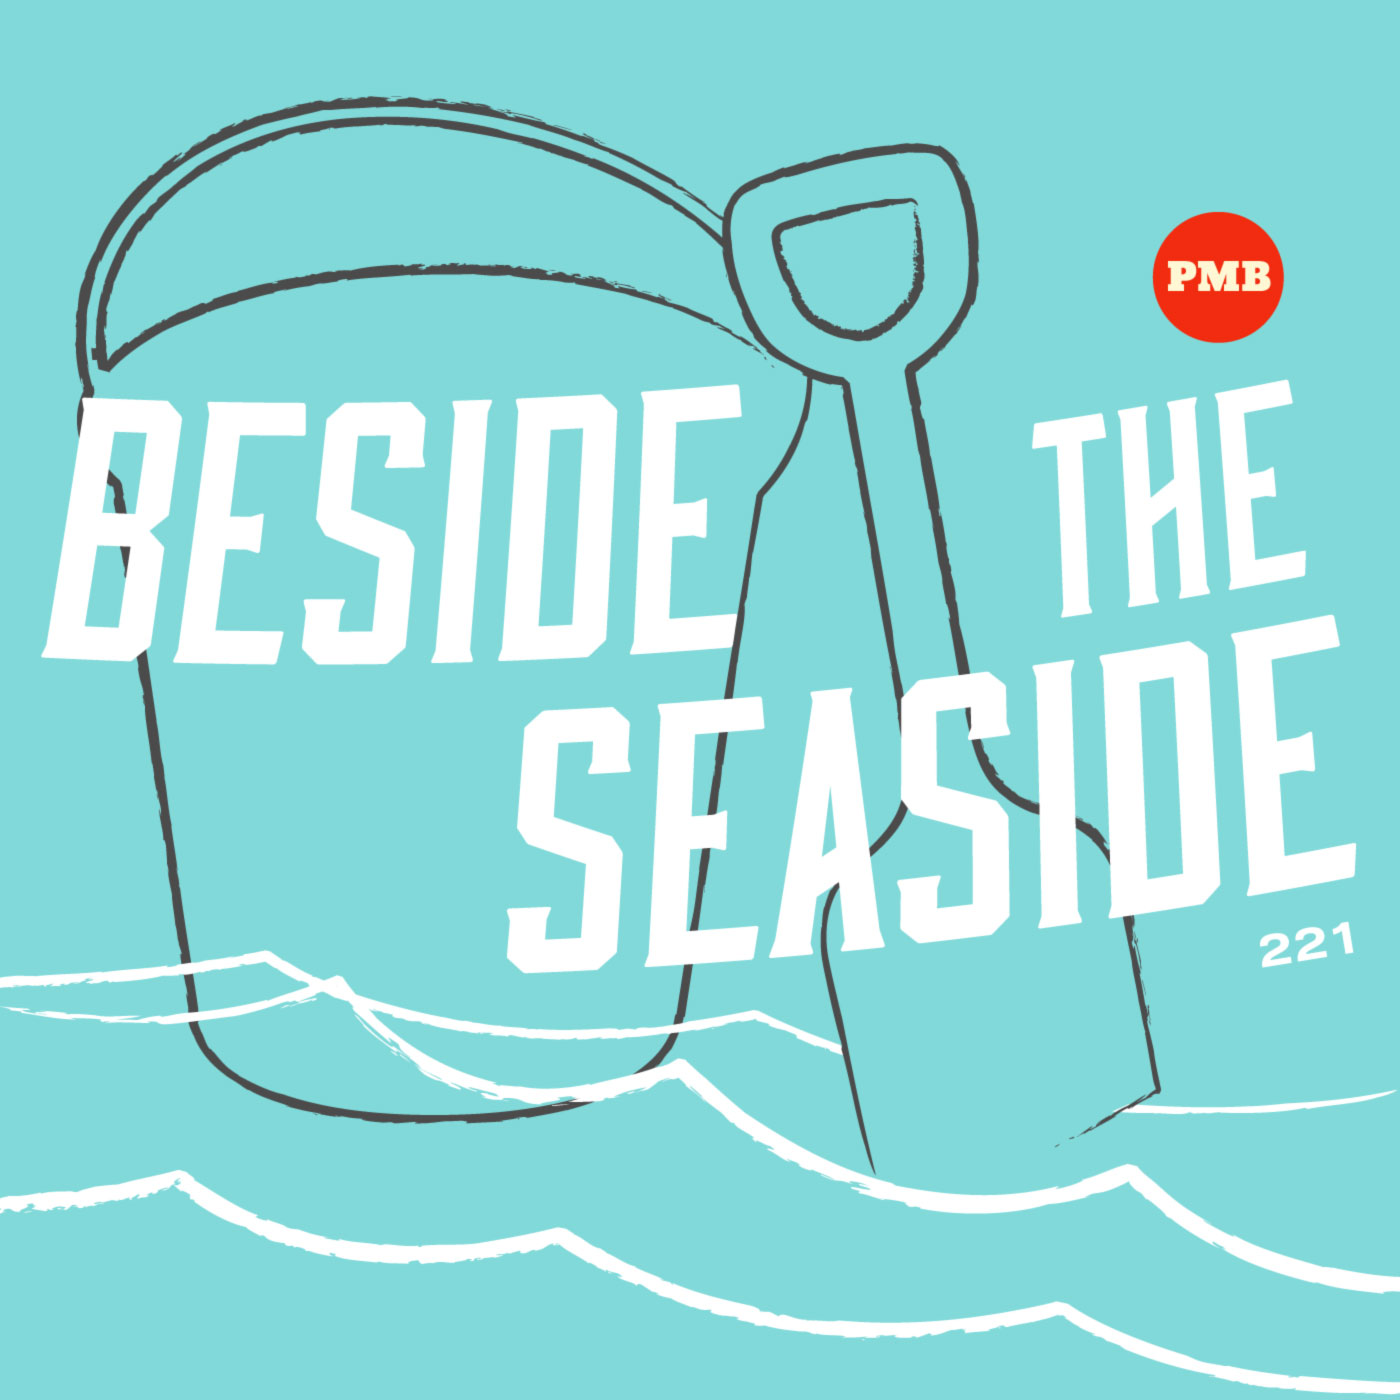 PMB221: Beside the Seaside